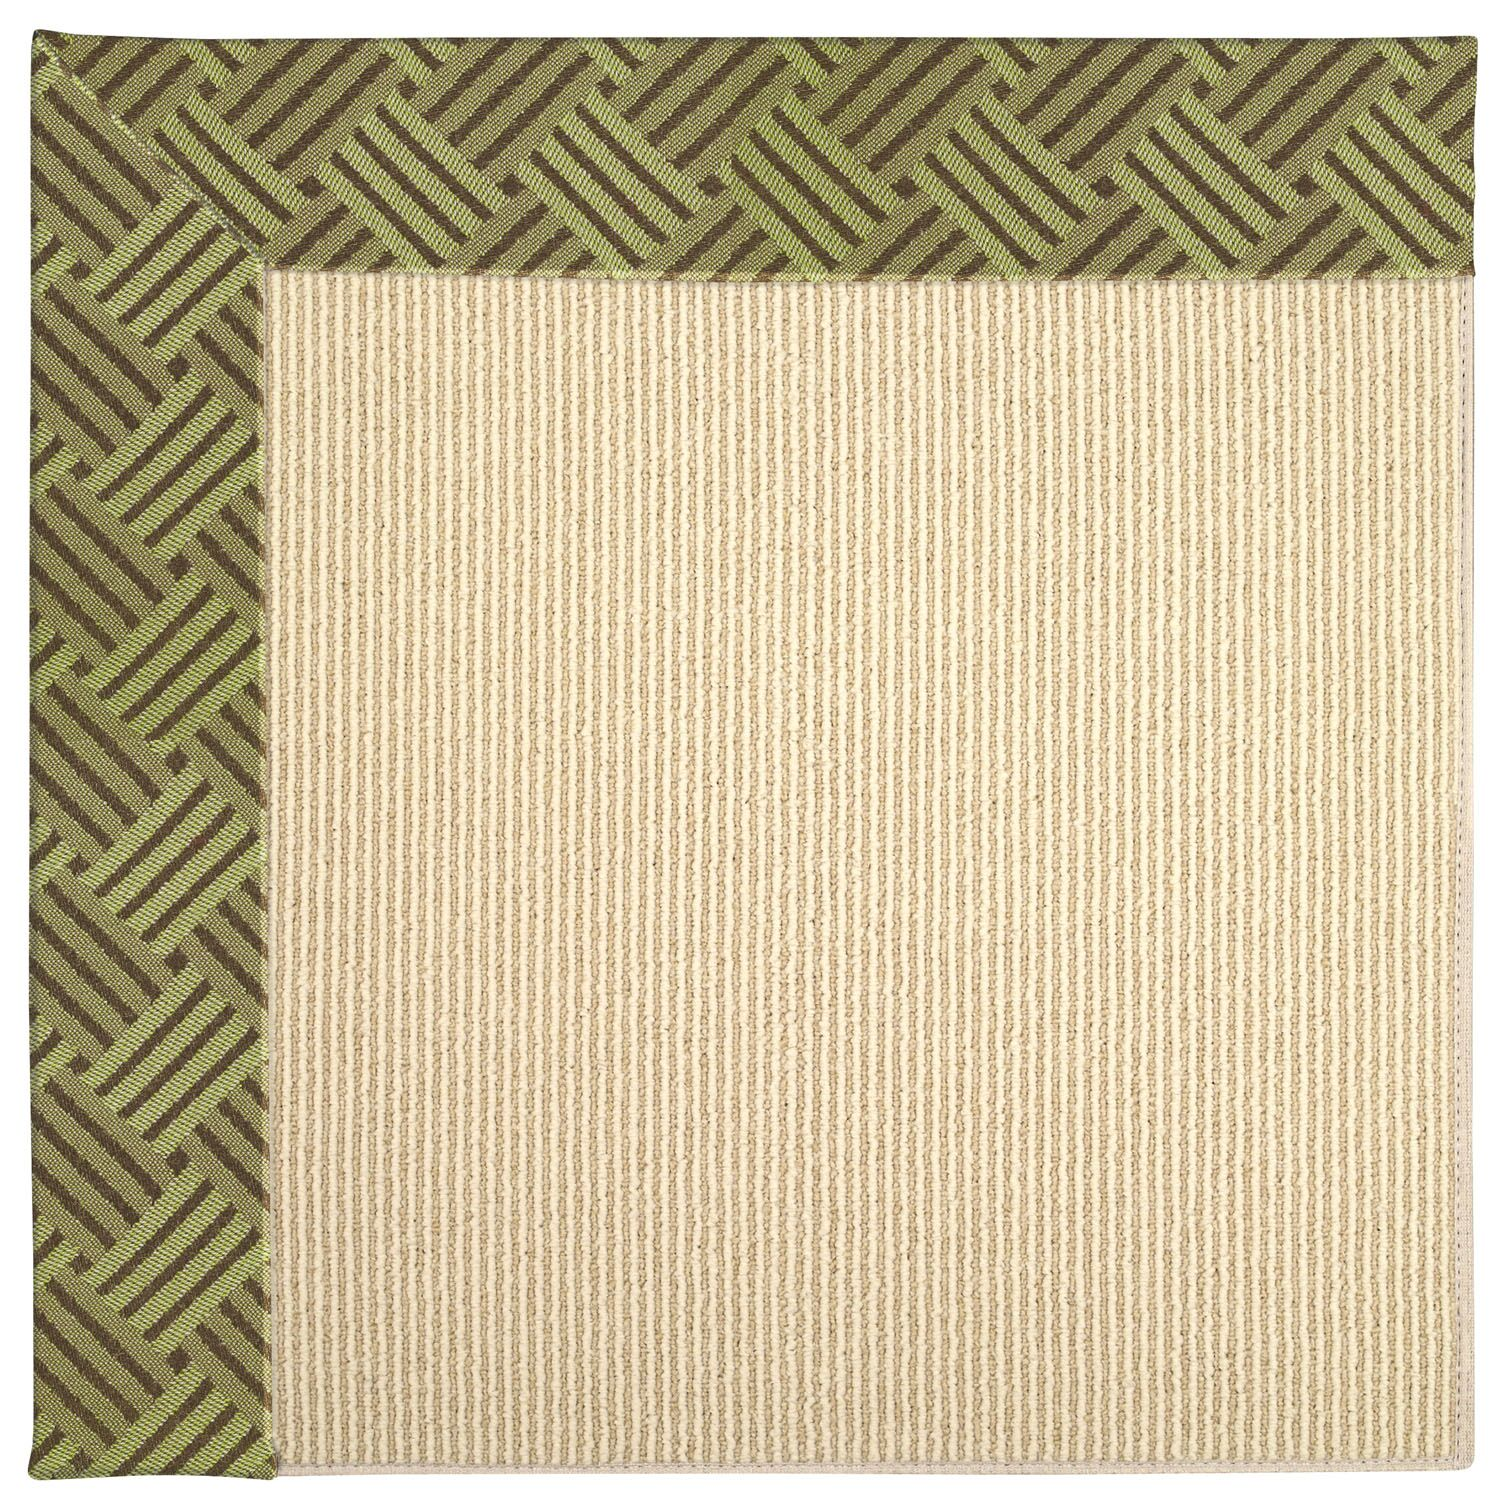 Lisle Machine Tufted Mossy Green/Brown Indoor/Outdoor Area Rug Rug Size: Rectangle 5' x 8'